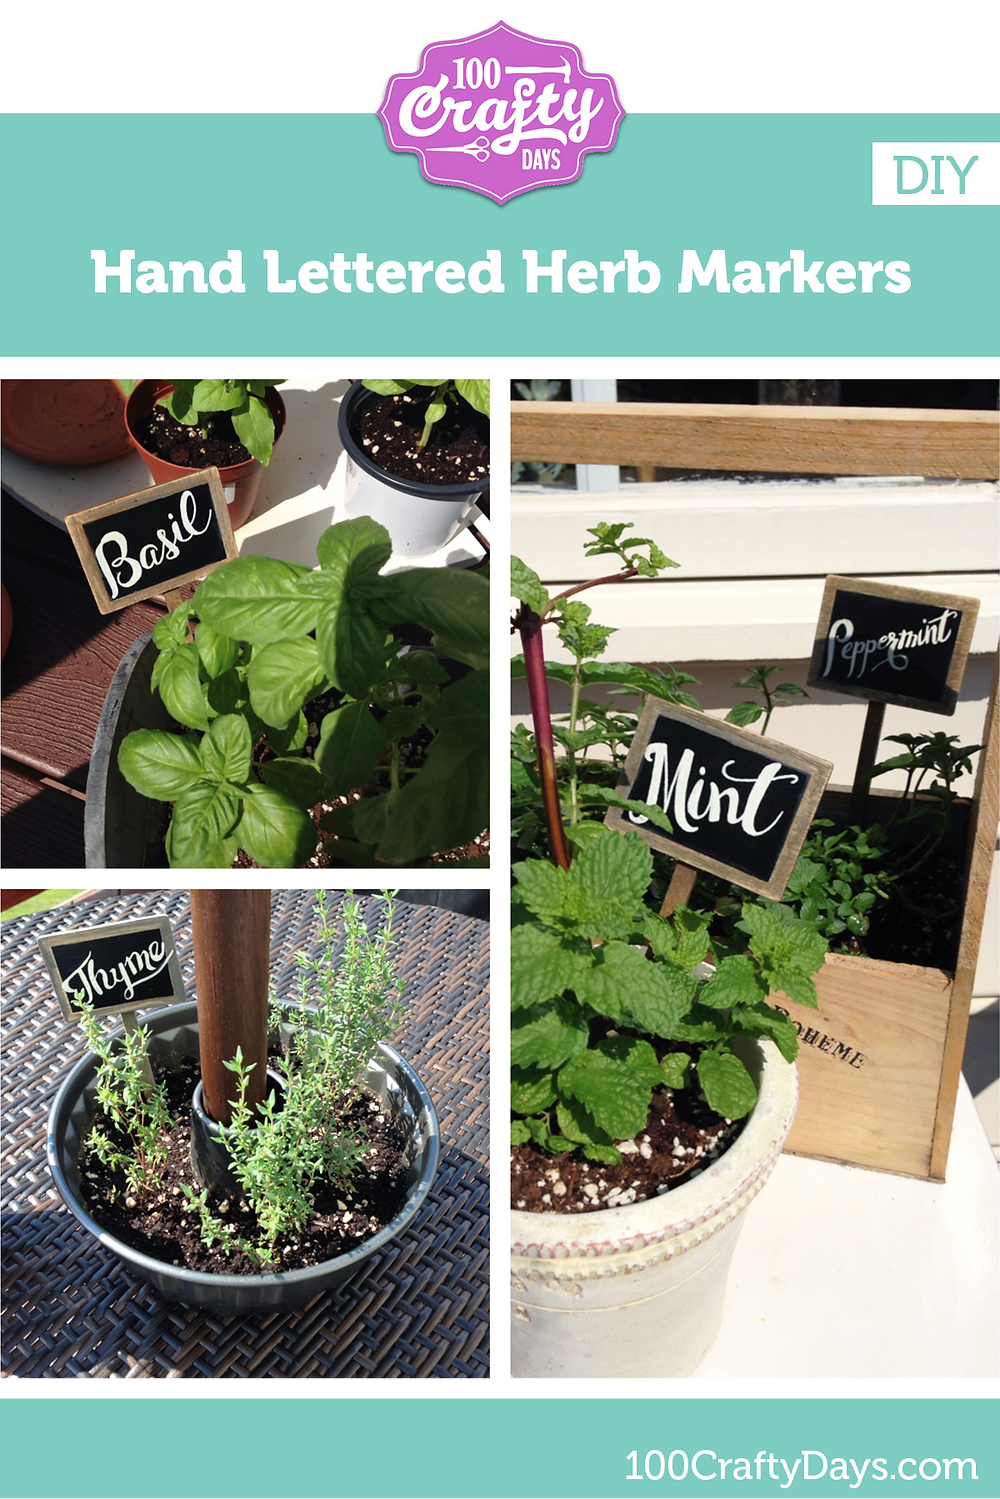 100 Crafty Days, Day 2 Hand Lettered Herb Markers